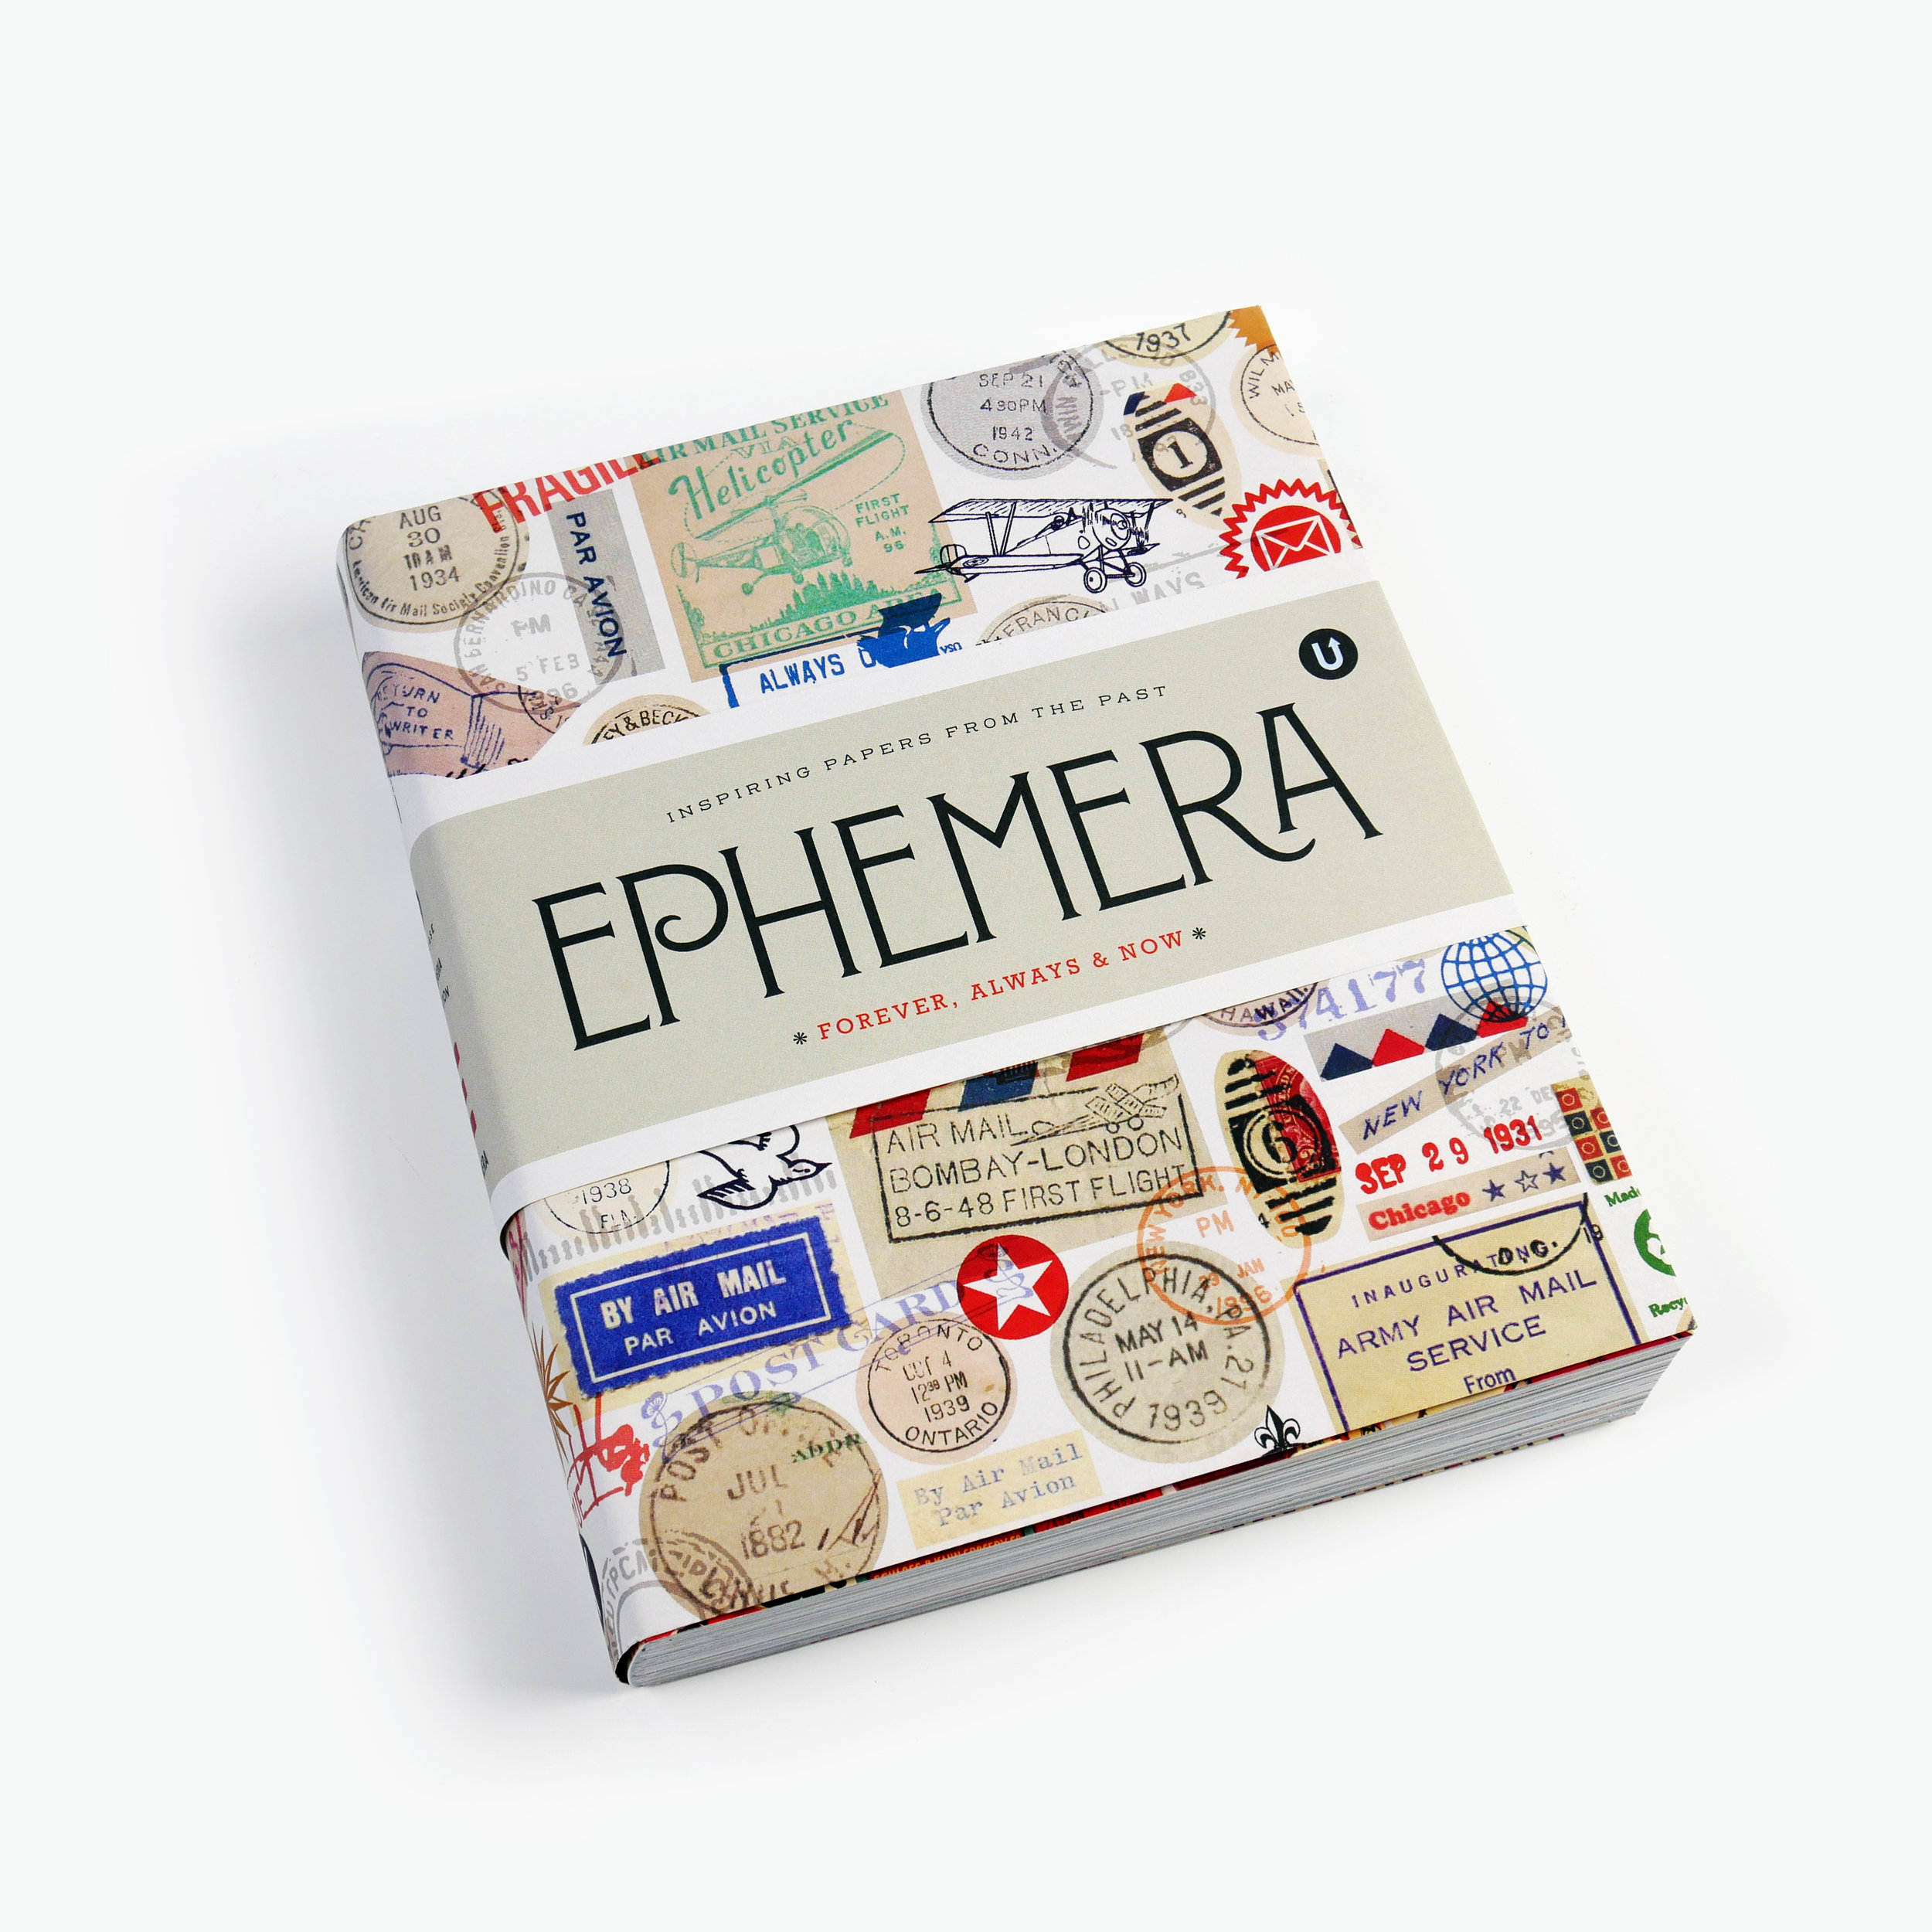 Ephemera-cover-07.JPG